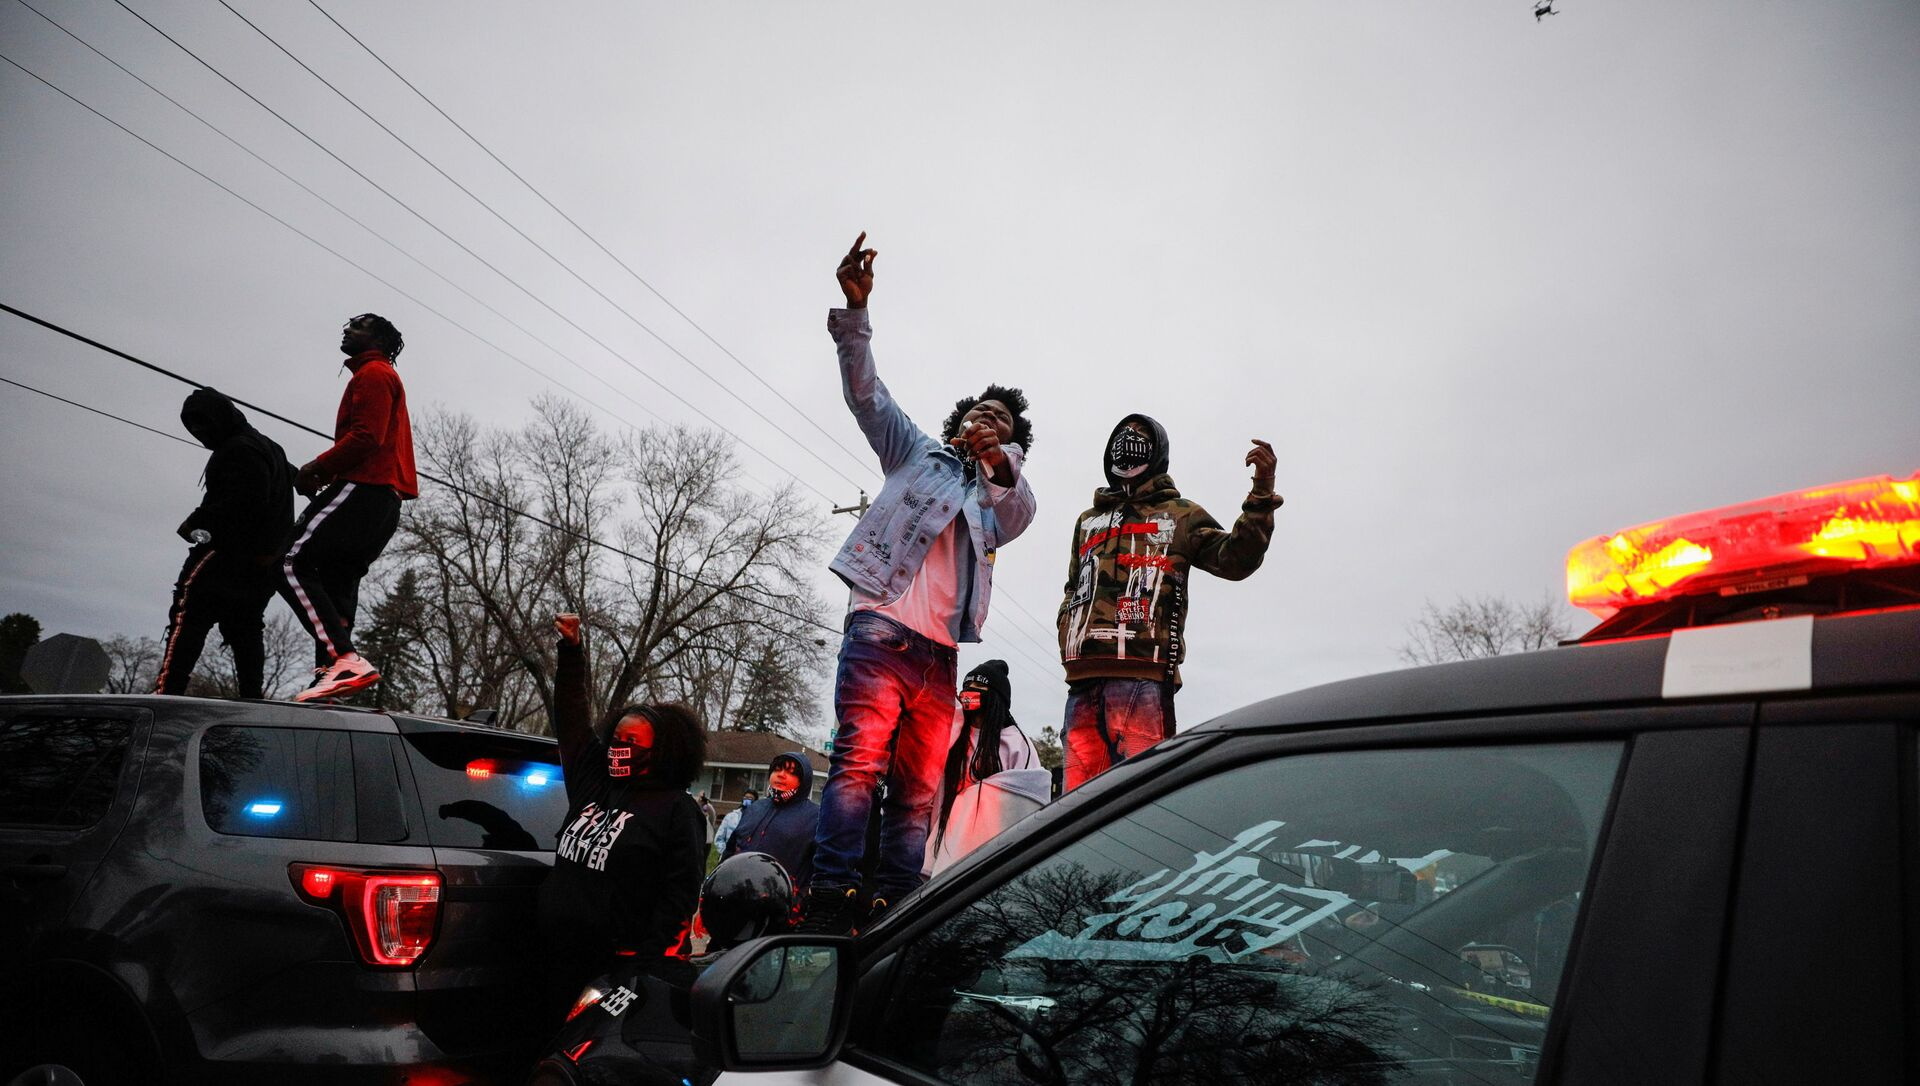 Demonstrators stand on a police vehicle during a protest after police allegedly shot and killed a man, who local media report is identified by the victim's mother as Daunte Wright, in Brooklyn Center, Minnesota, U.S. - Sputnik Italia, 1920, 12.04.2021